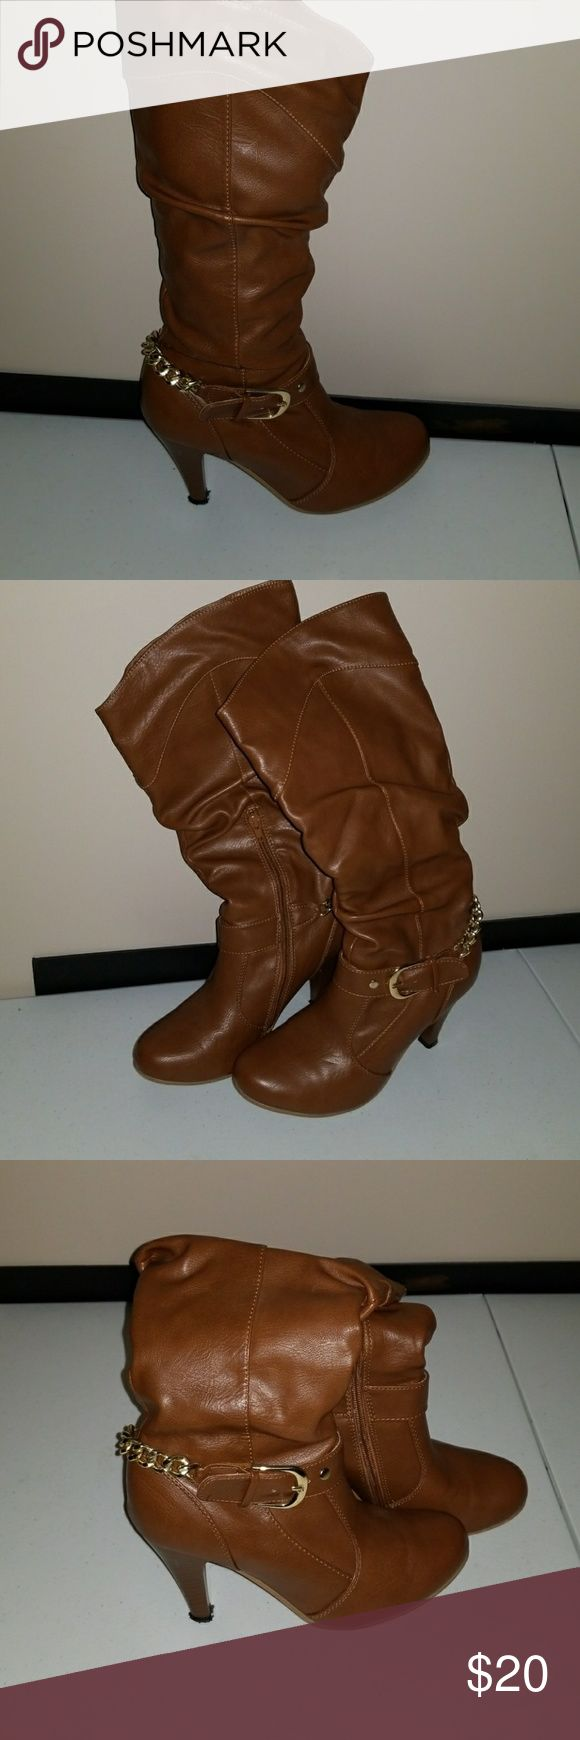 Cutest tan boots. Tan , almost knee high. Cute,  flirty paired with skinny jeans . Fit great on calves. Gold chain hardware. Inner calf half zipper. Short heel. Good used condition. Size 8 Shoes Heeled Boots